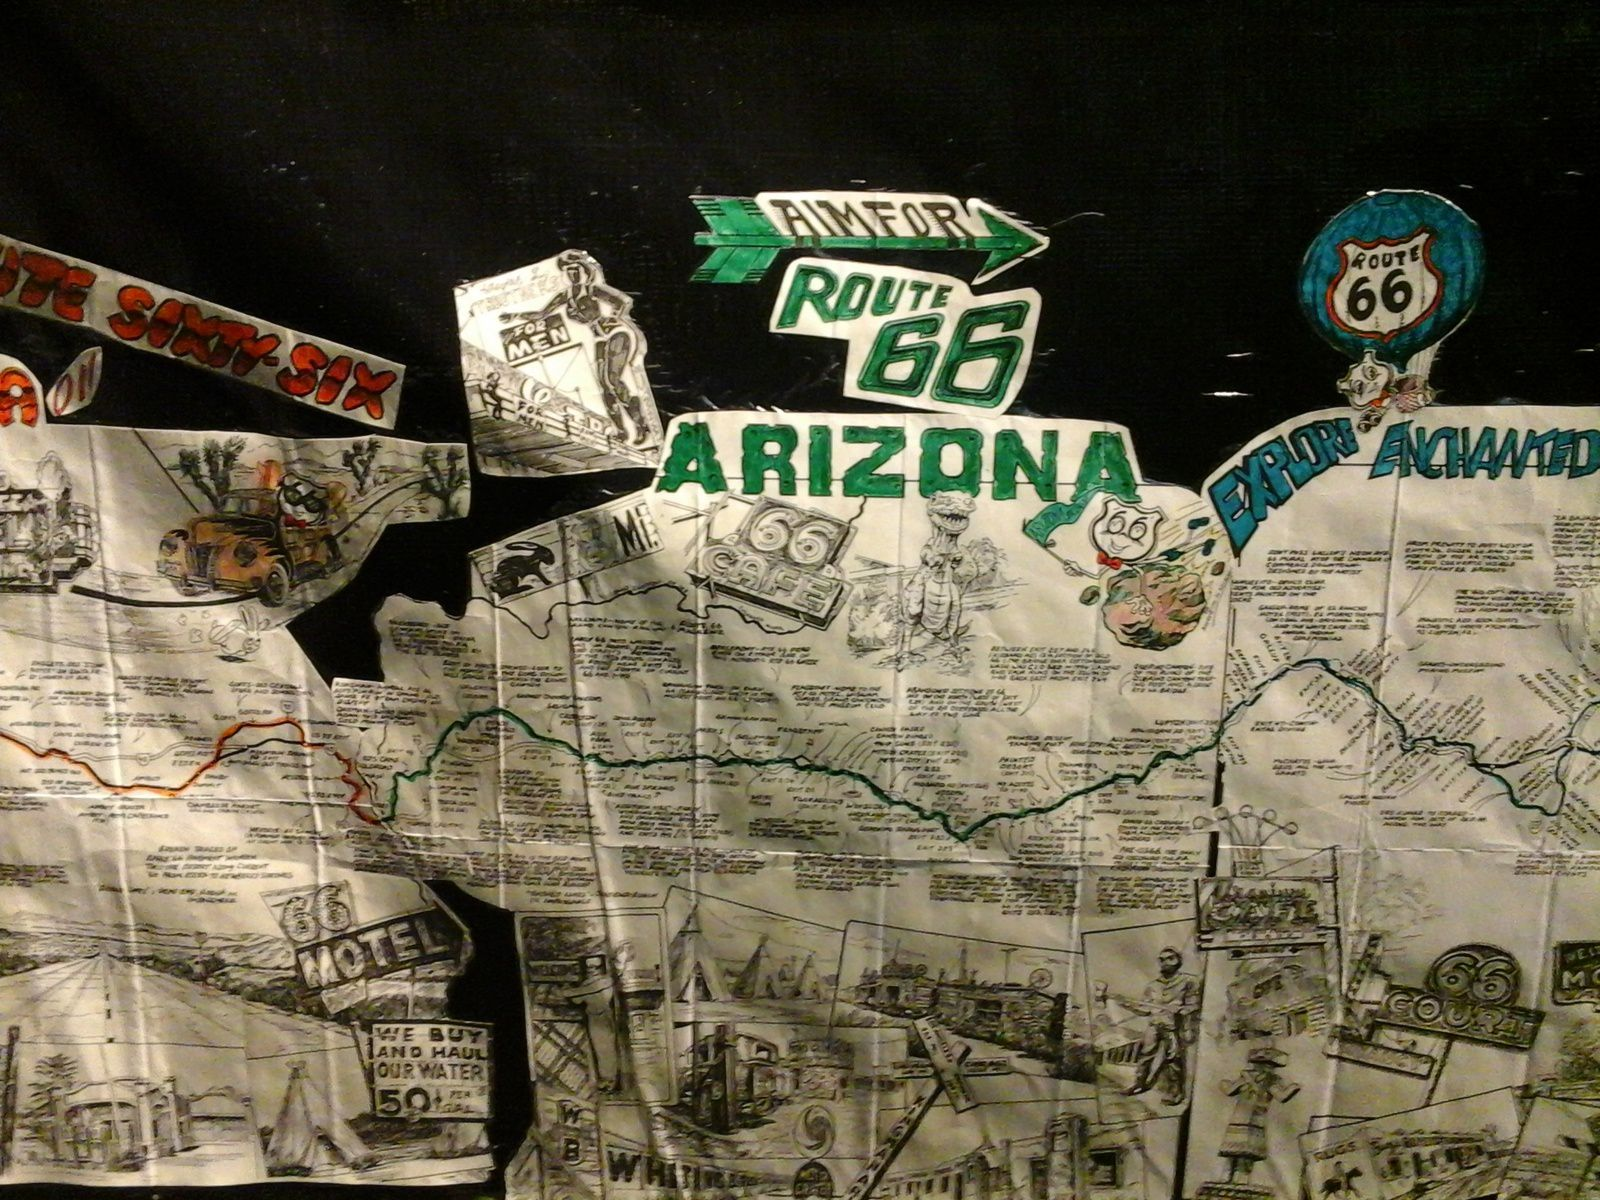 Day 4 : Get your kicks on route 66....